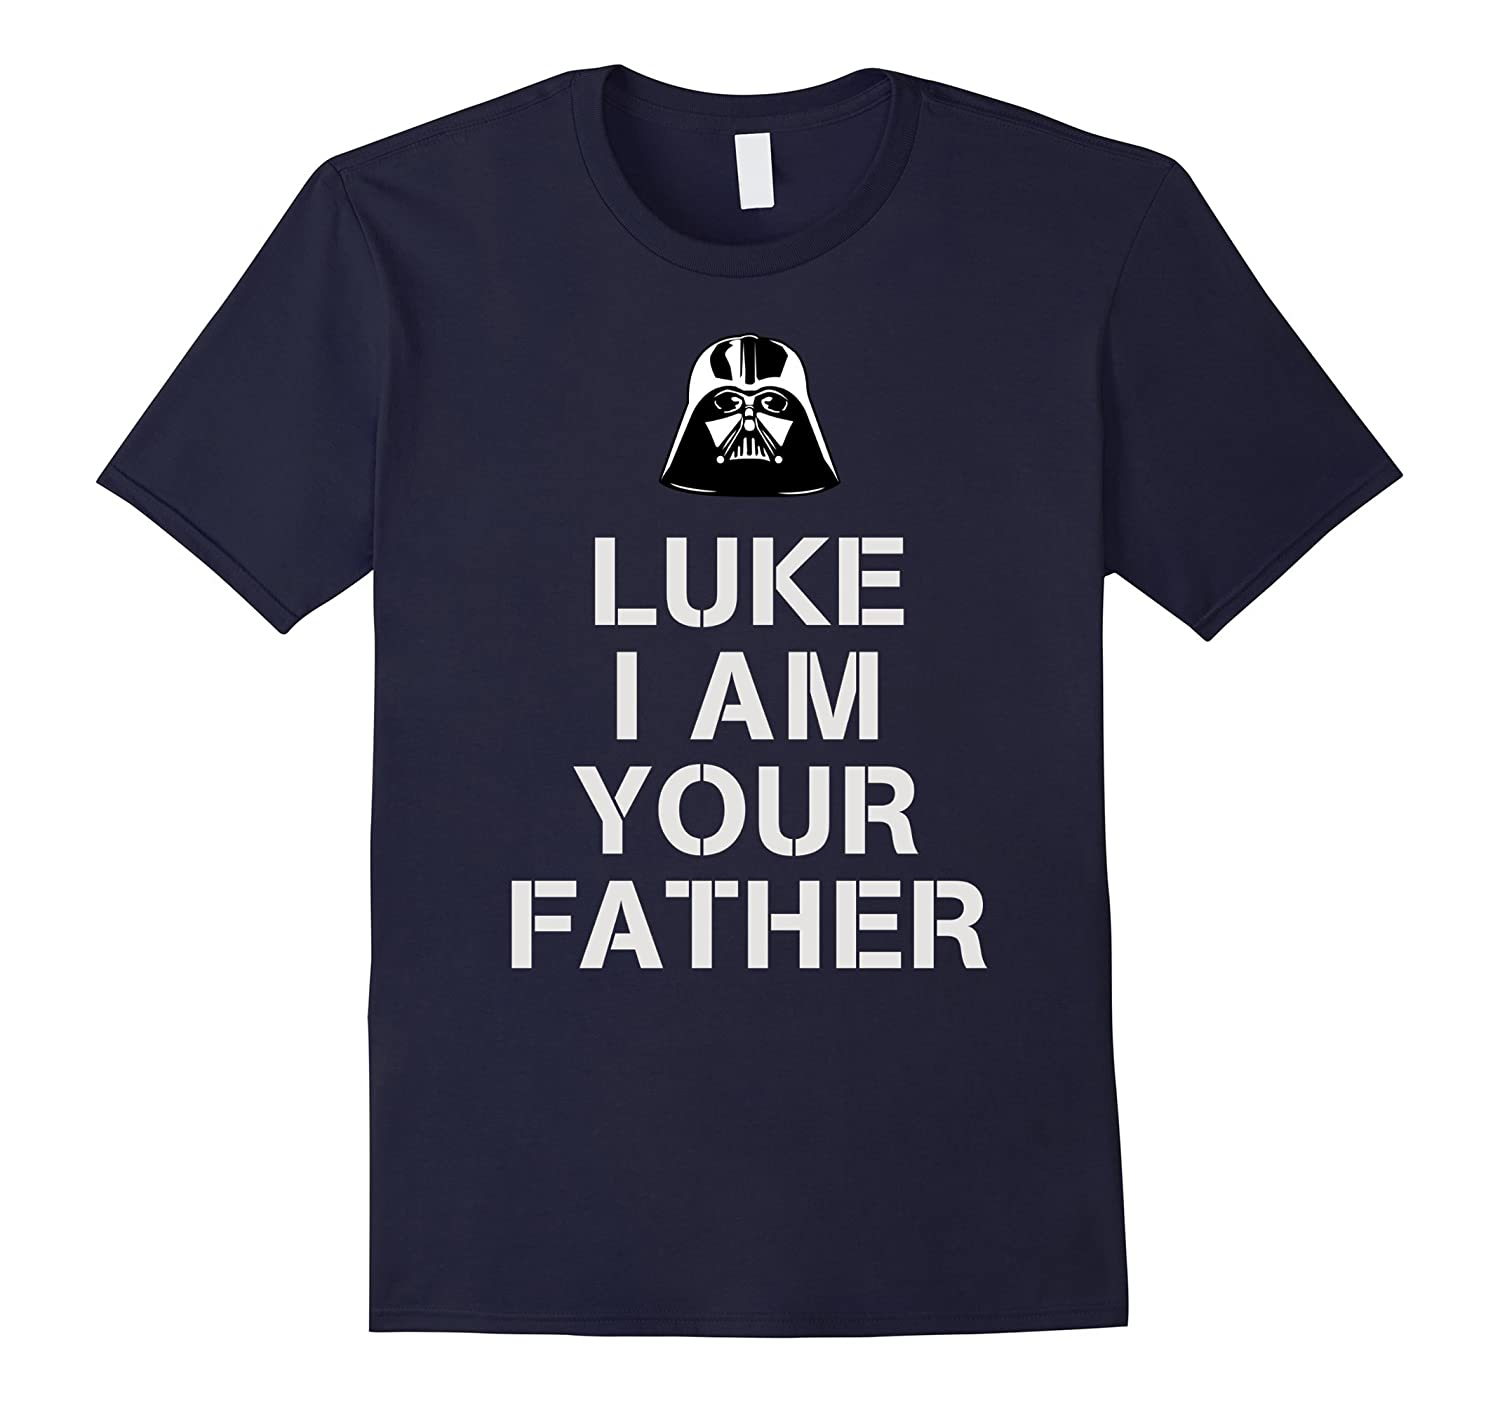 Mens Luke I Am Your Father T-shirt - 5 Color Options-TD